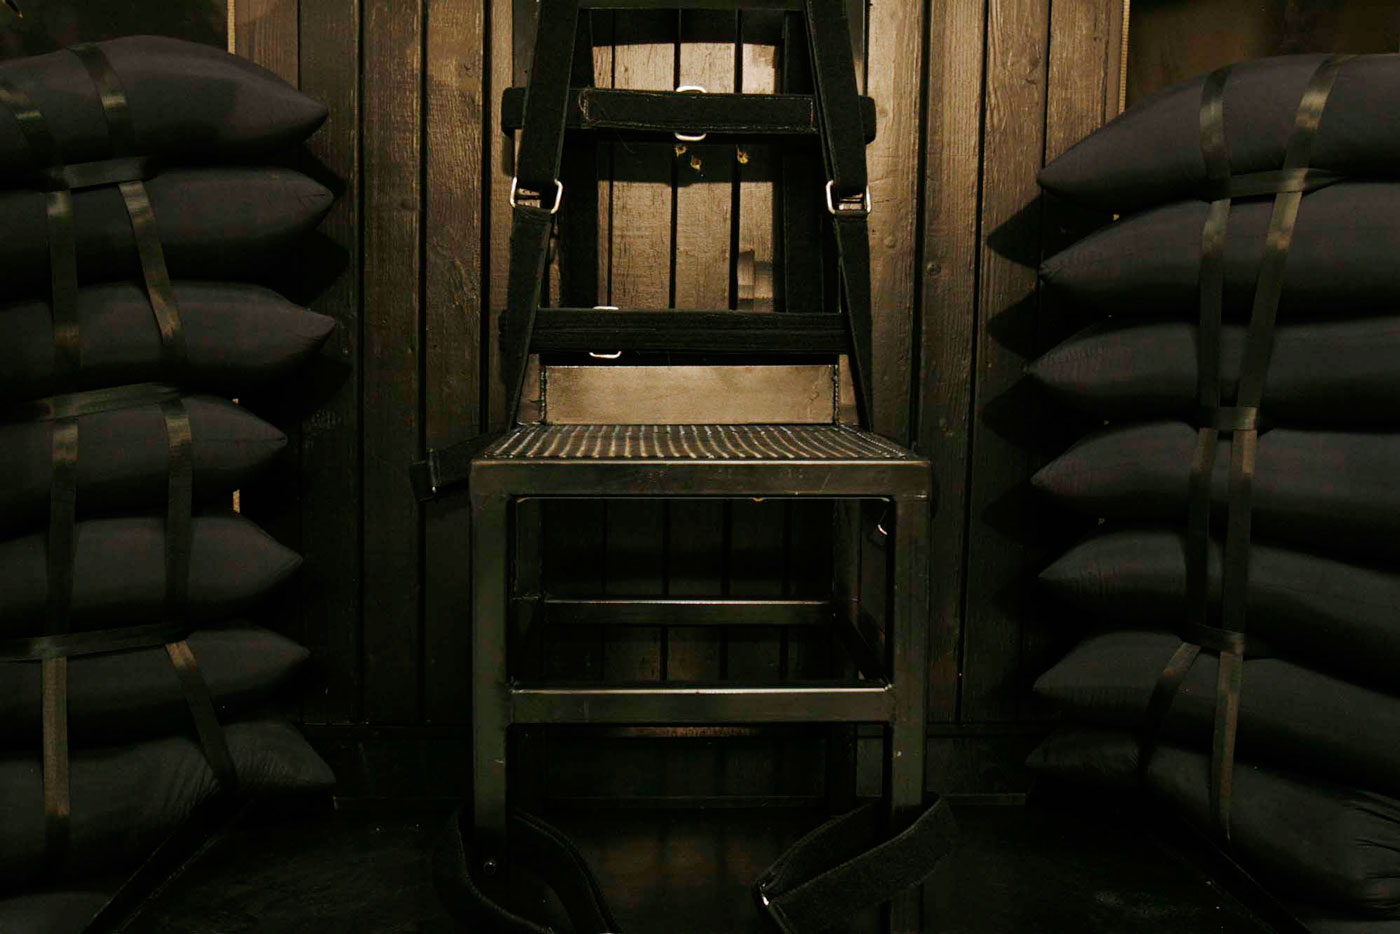 electric chair execution gone wrong gold universal covers andrew jerell jones  the intercept